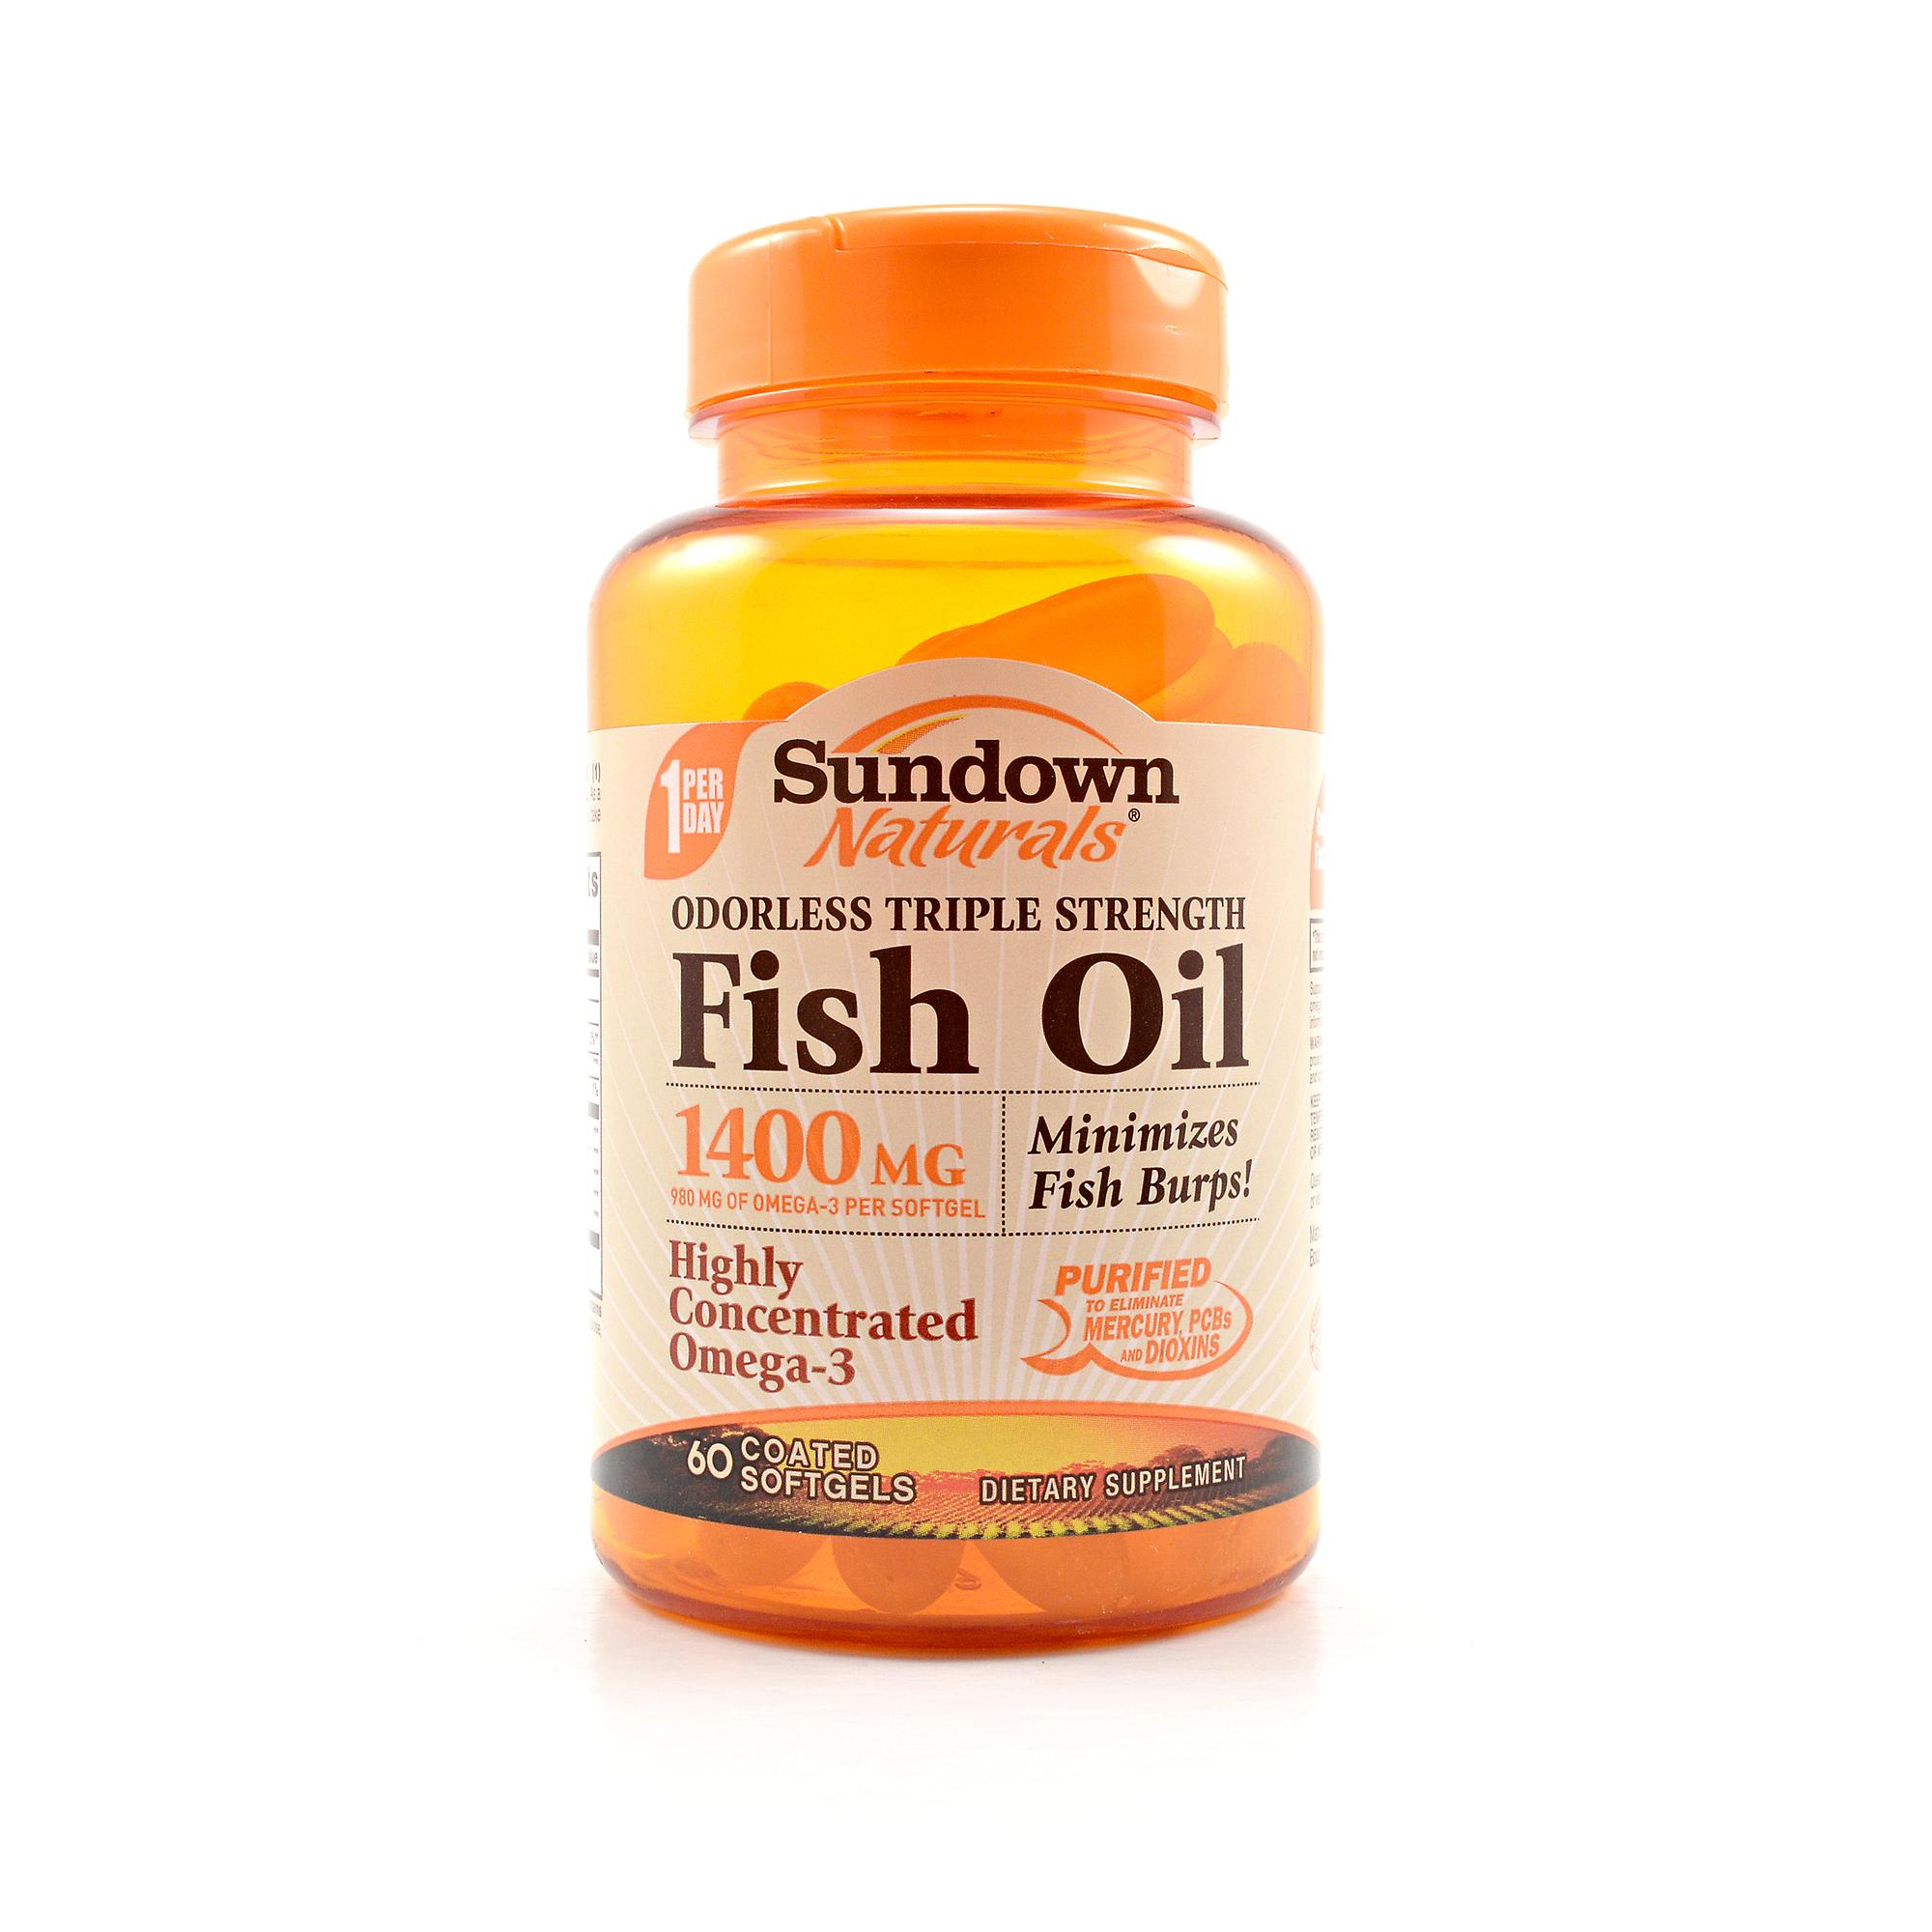 sundown triple strength odorless fish oil review labdoor